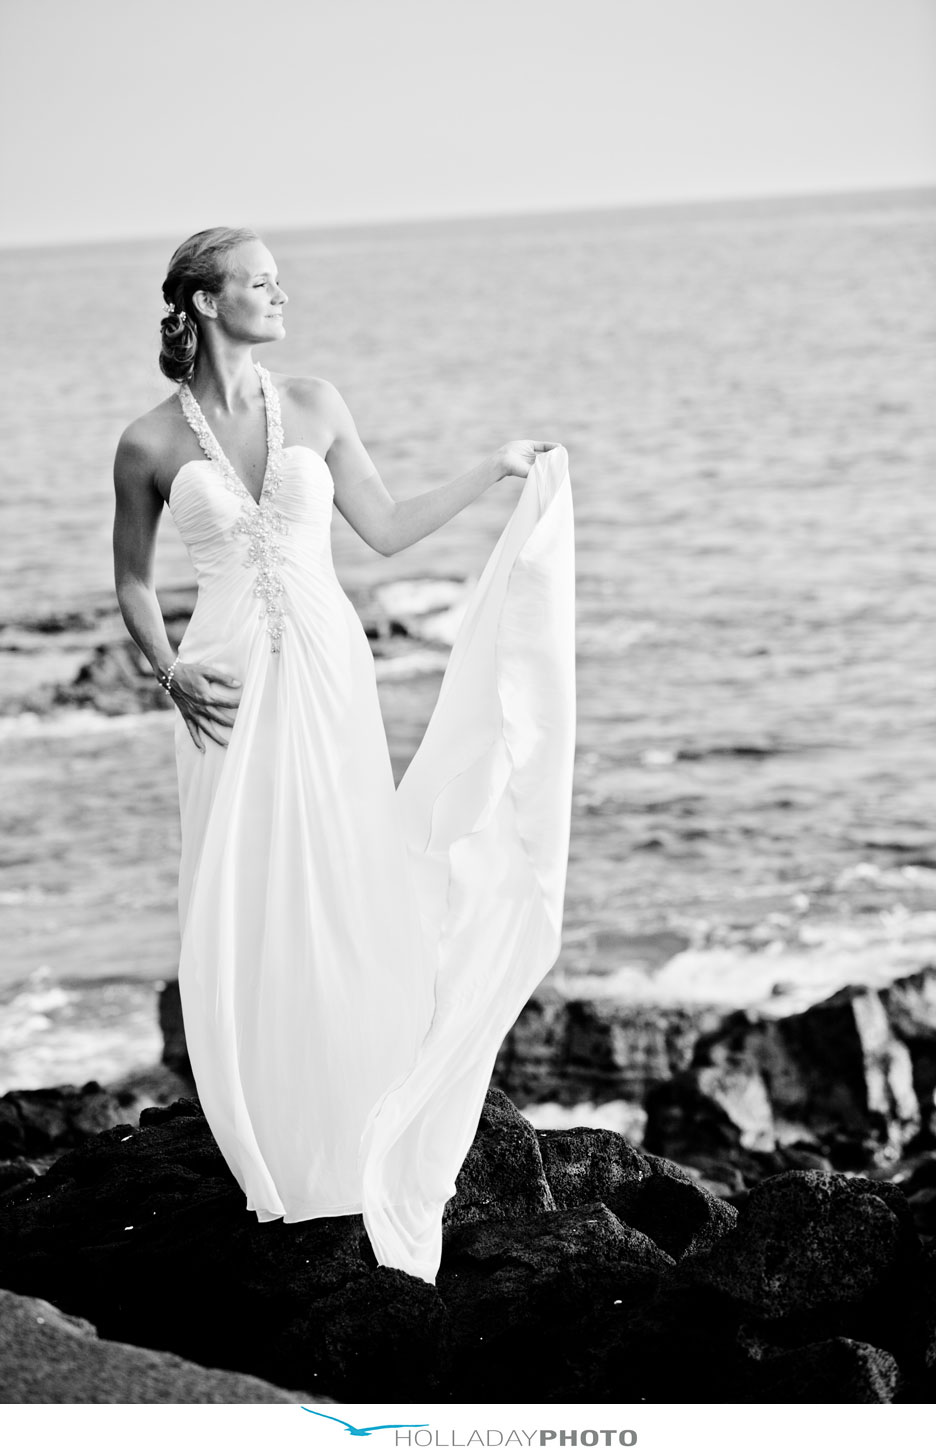 Hawaii-wedding-photography-bride